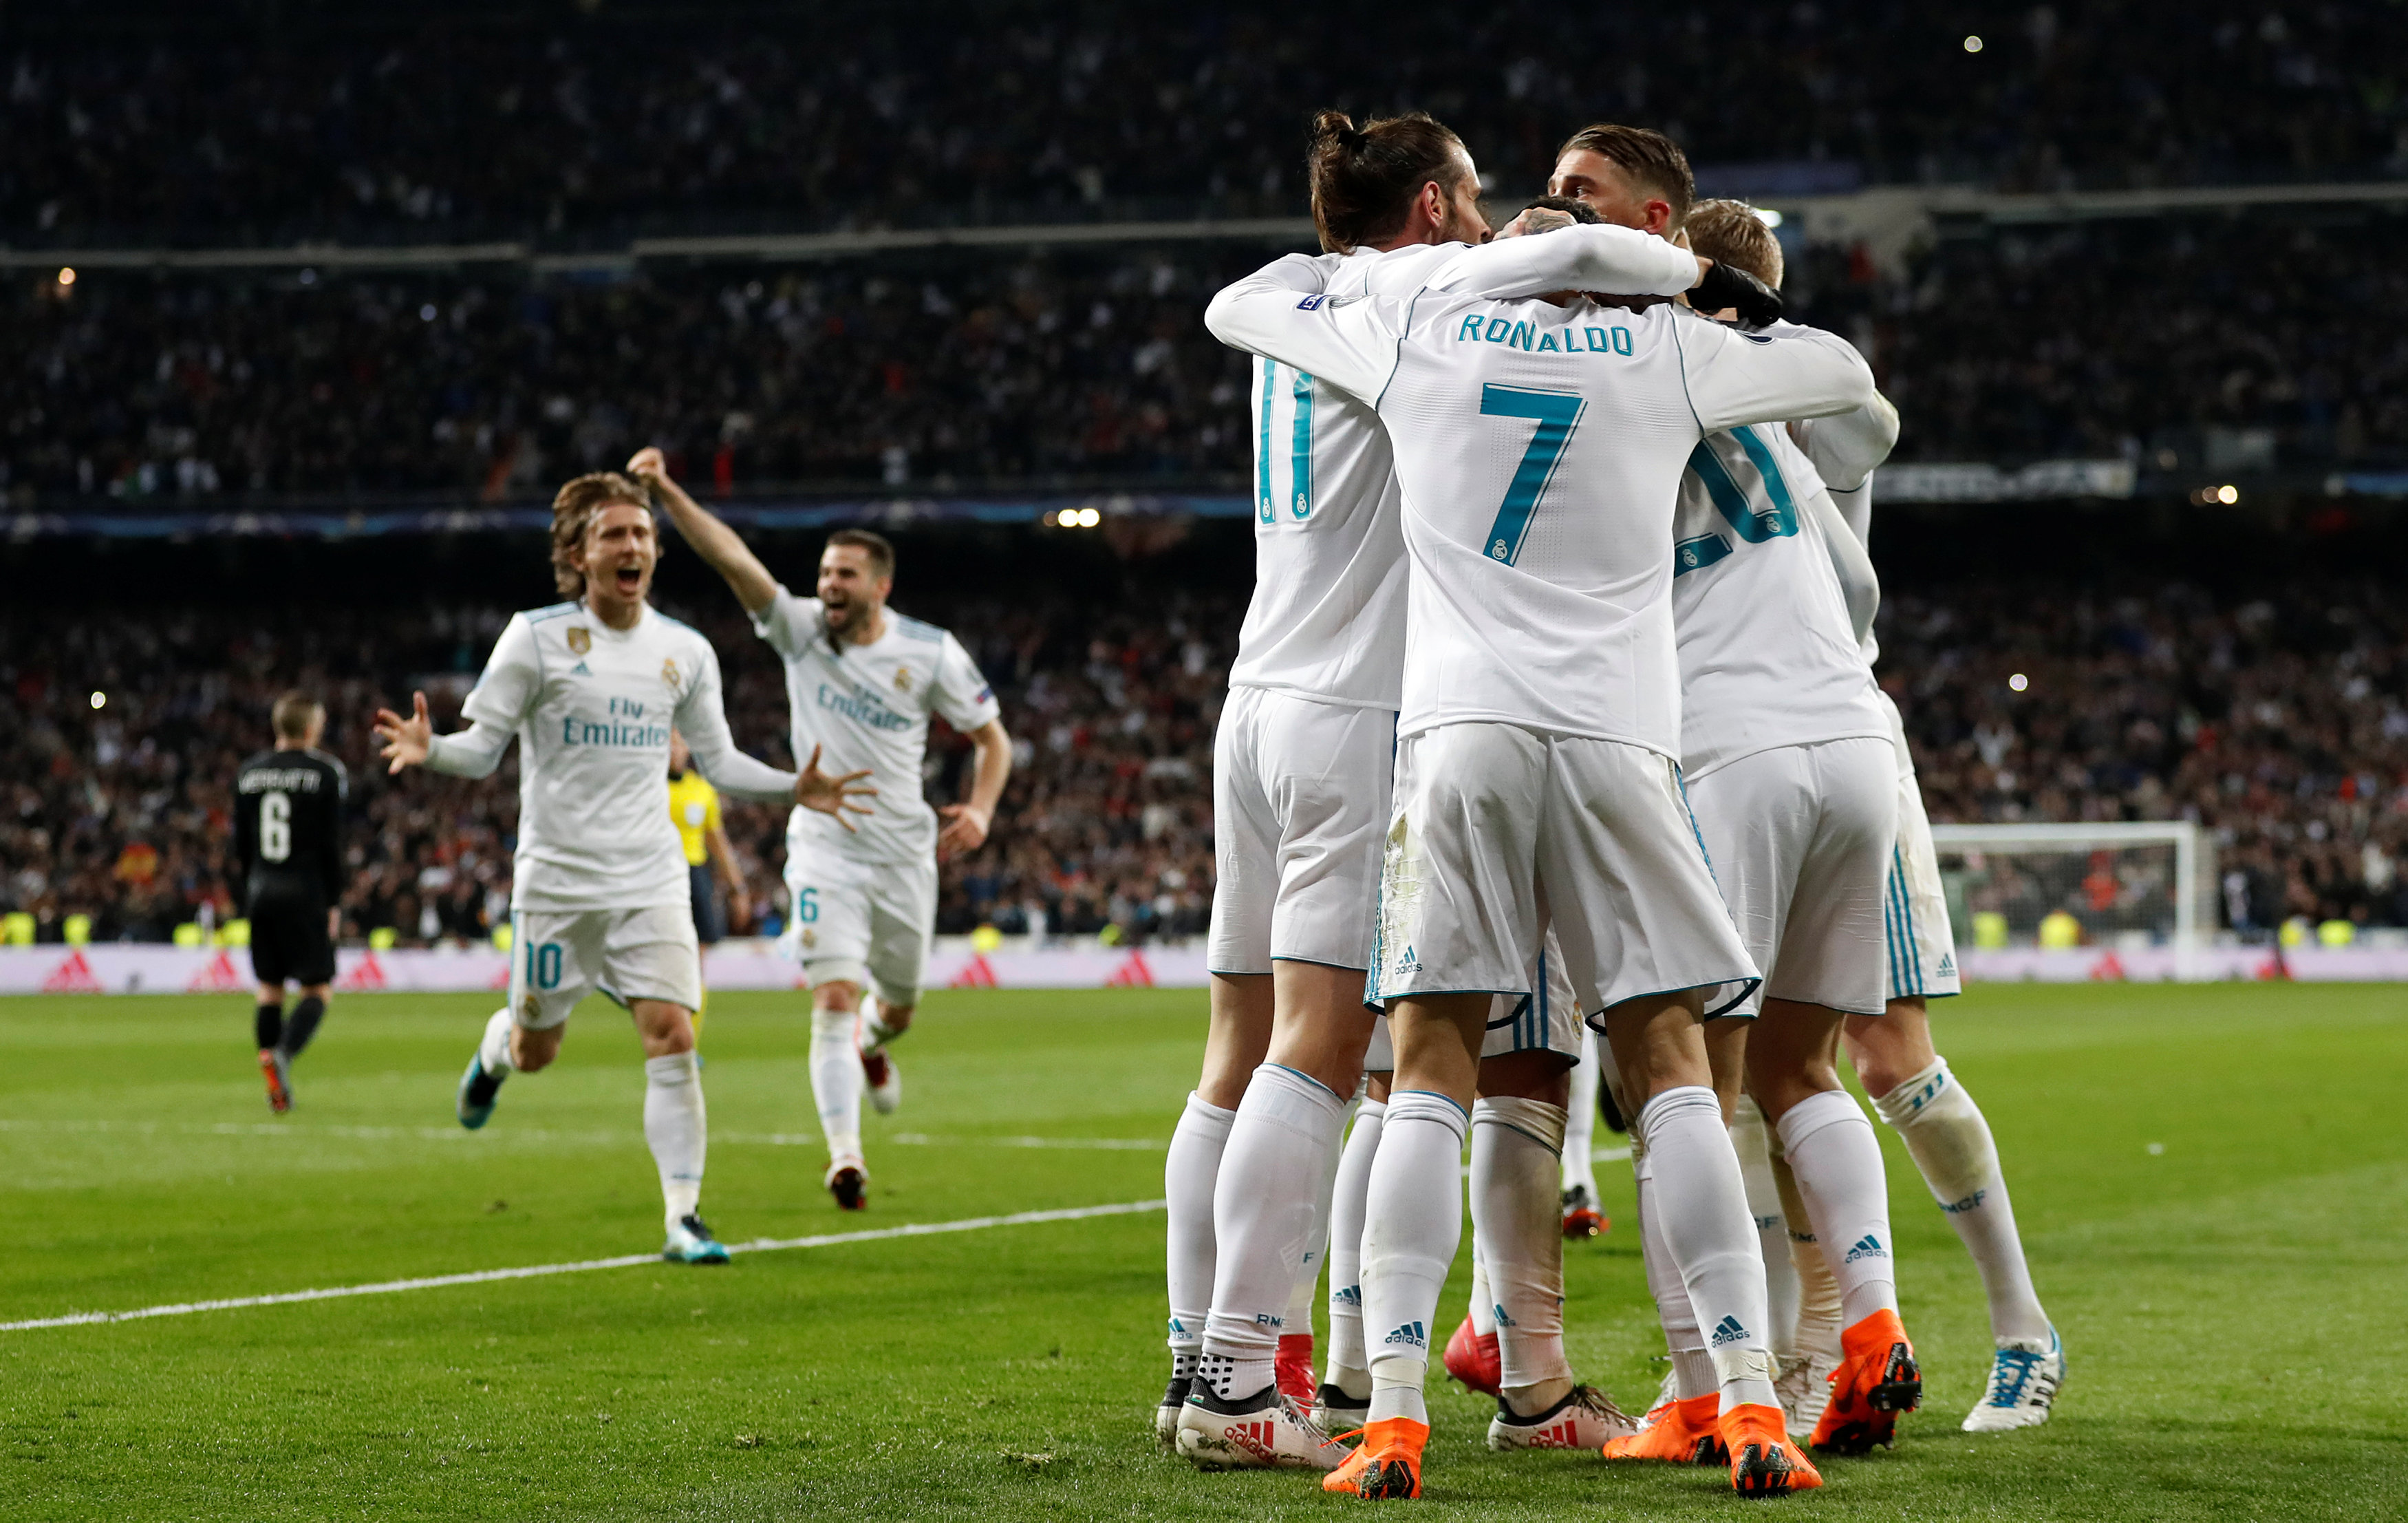 Effectief Real in slotfase langs PSG in achtste finales Champions League